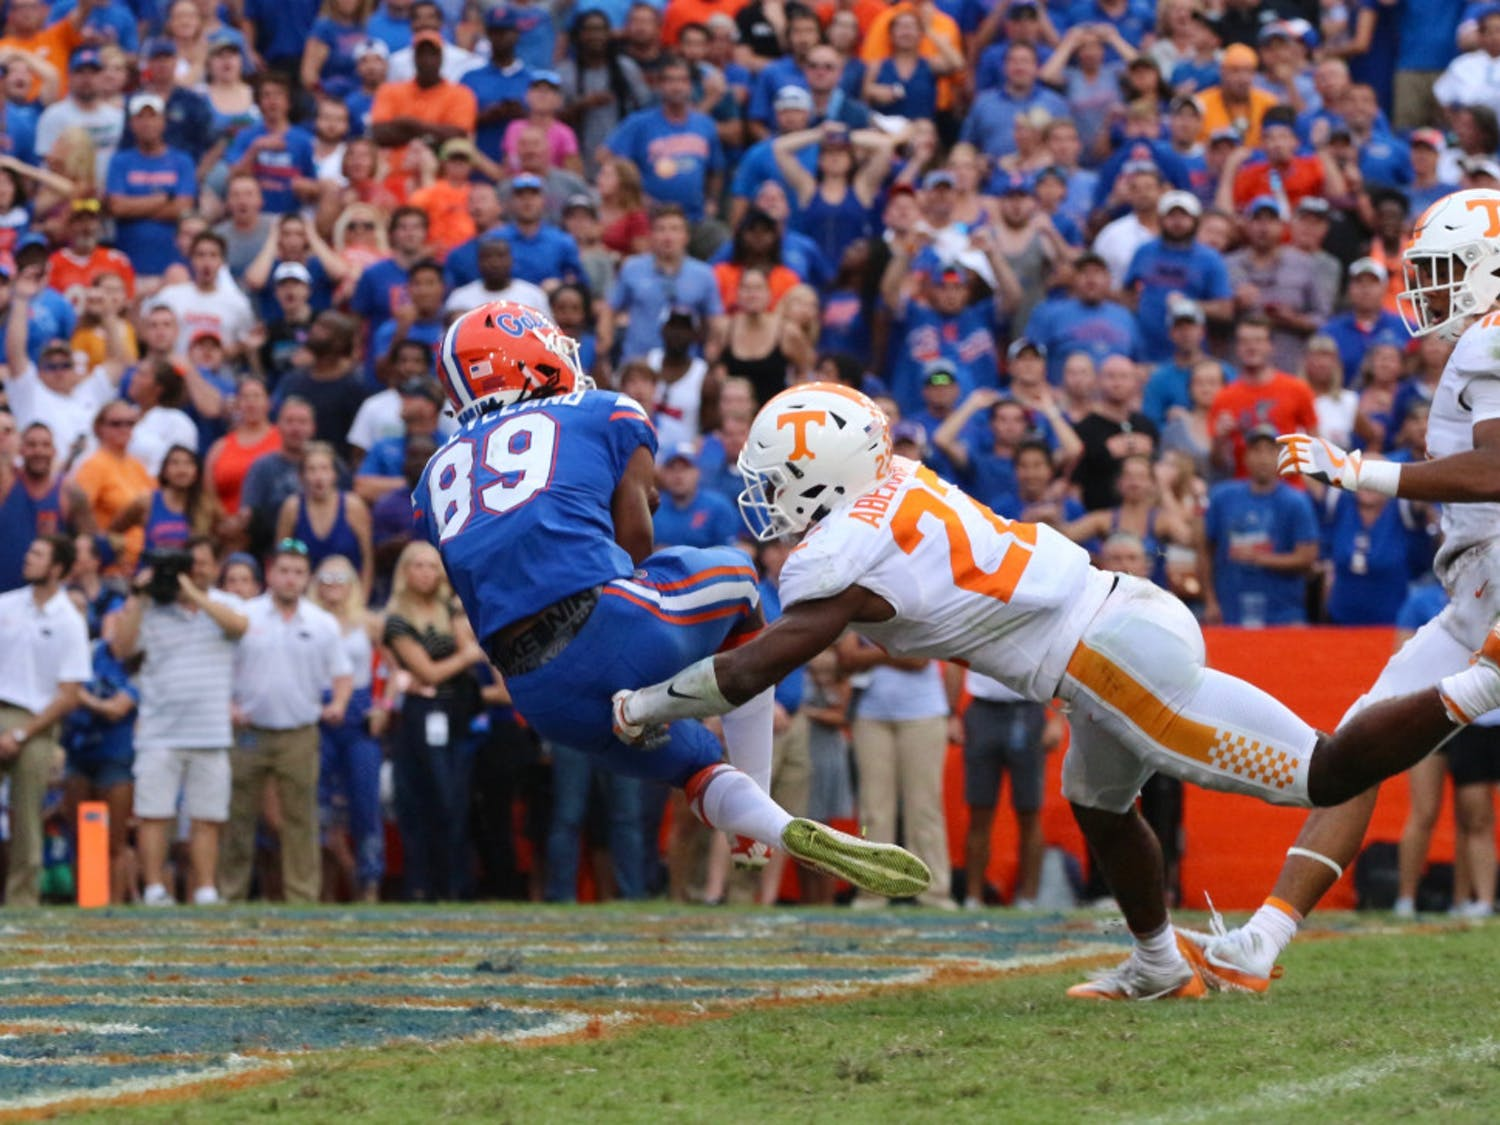 UF wide receiver Tyrie Cleveland makes the game winning touchdown catch in Florida's 26-20 win against Tennessee at Ben Hill Griffin Stadium.